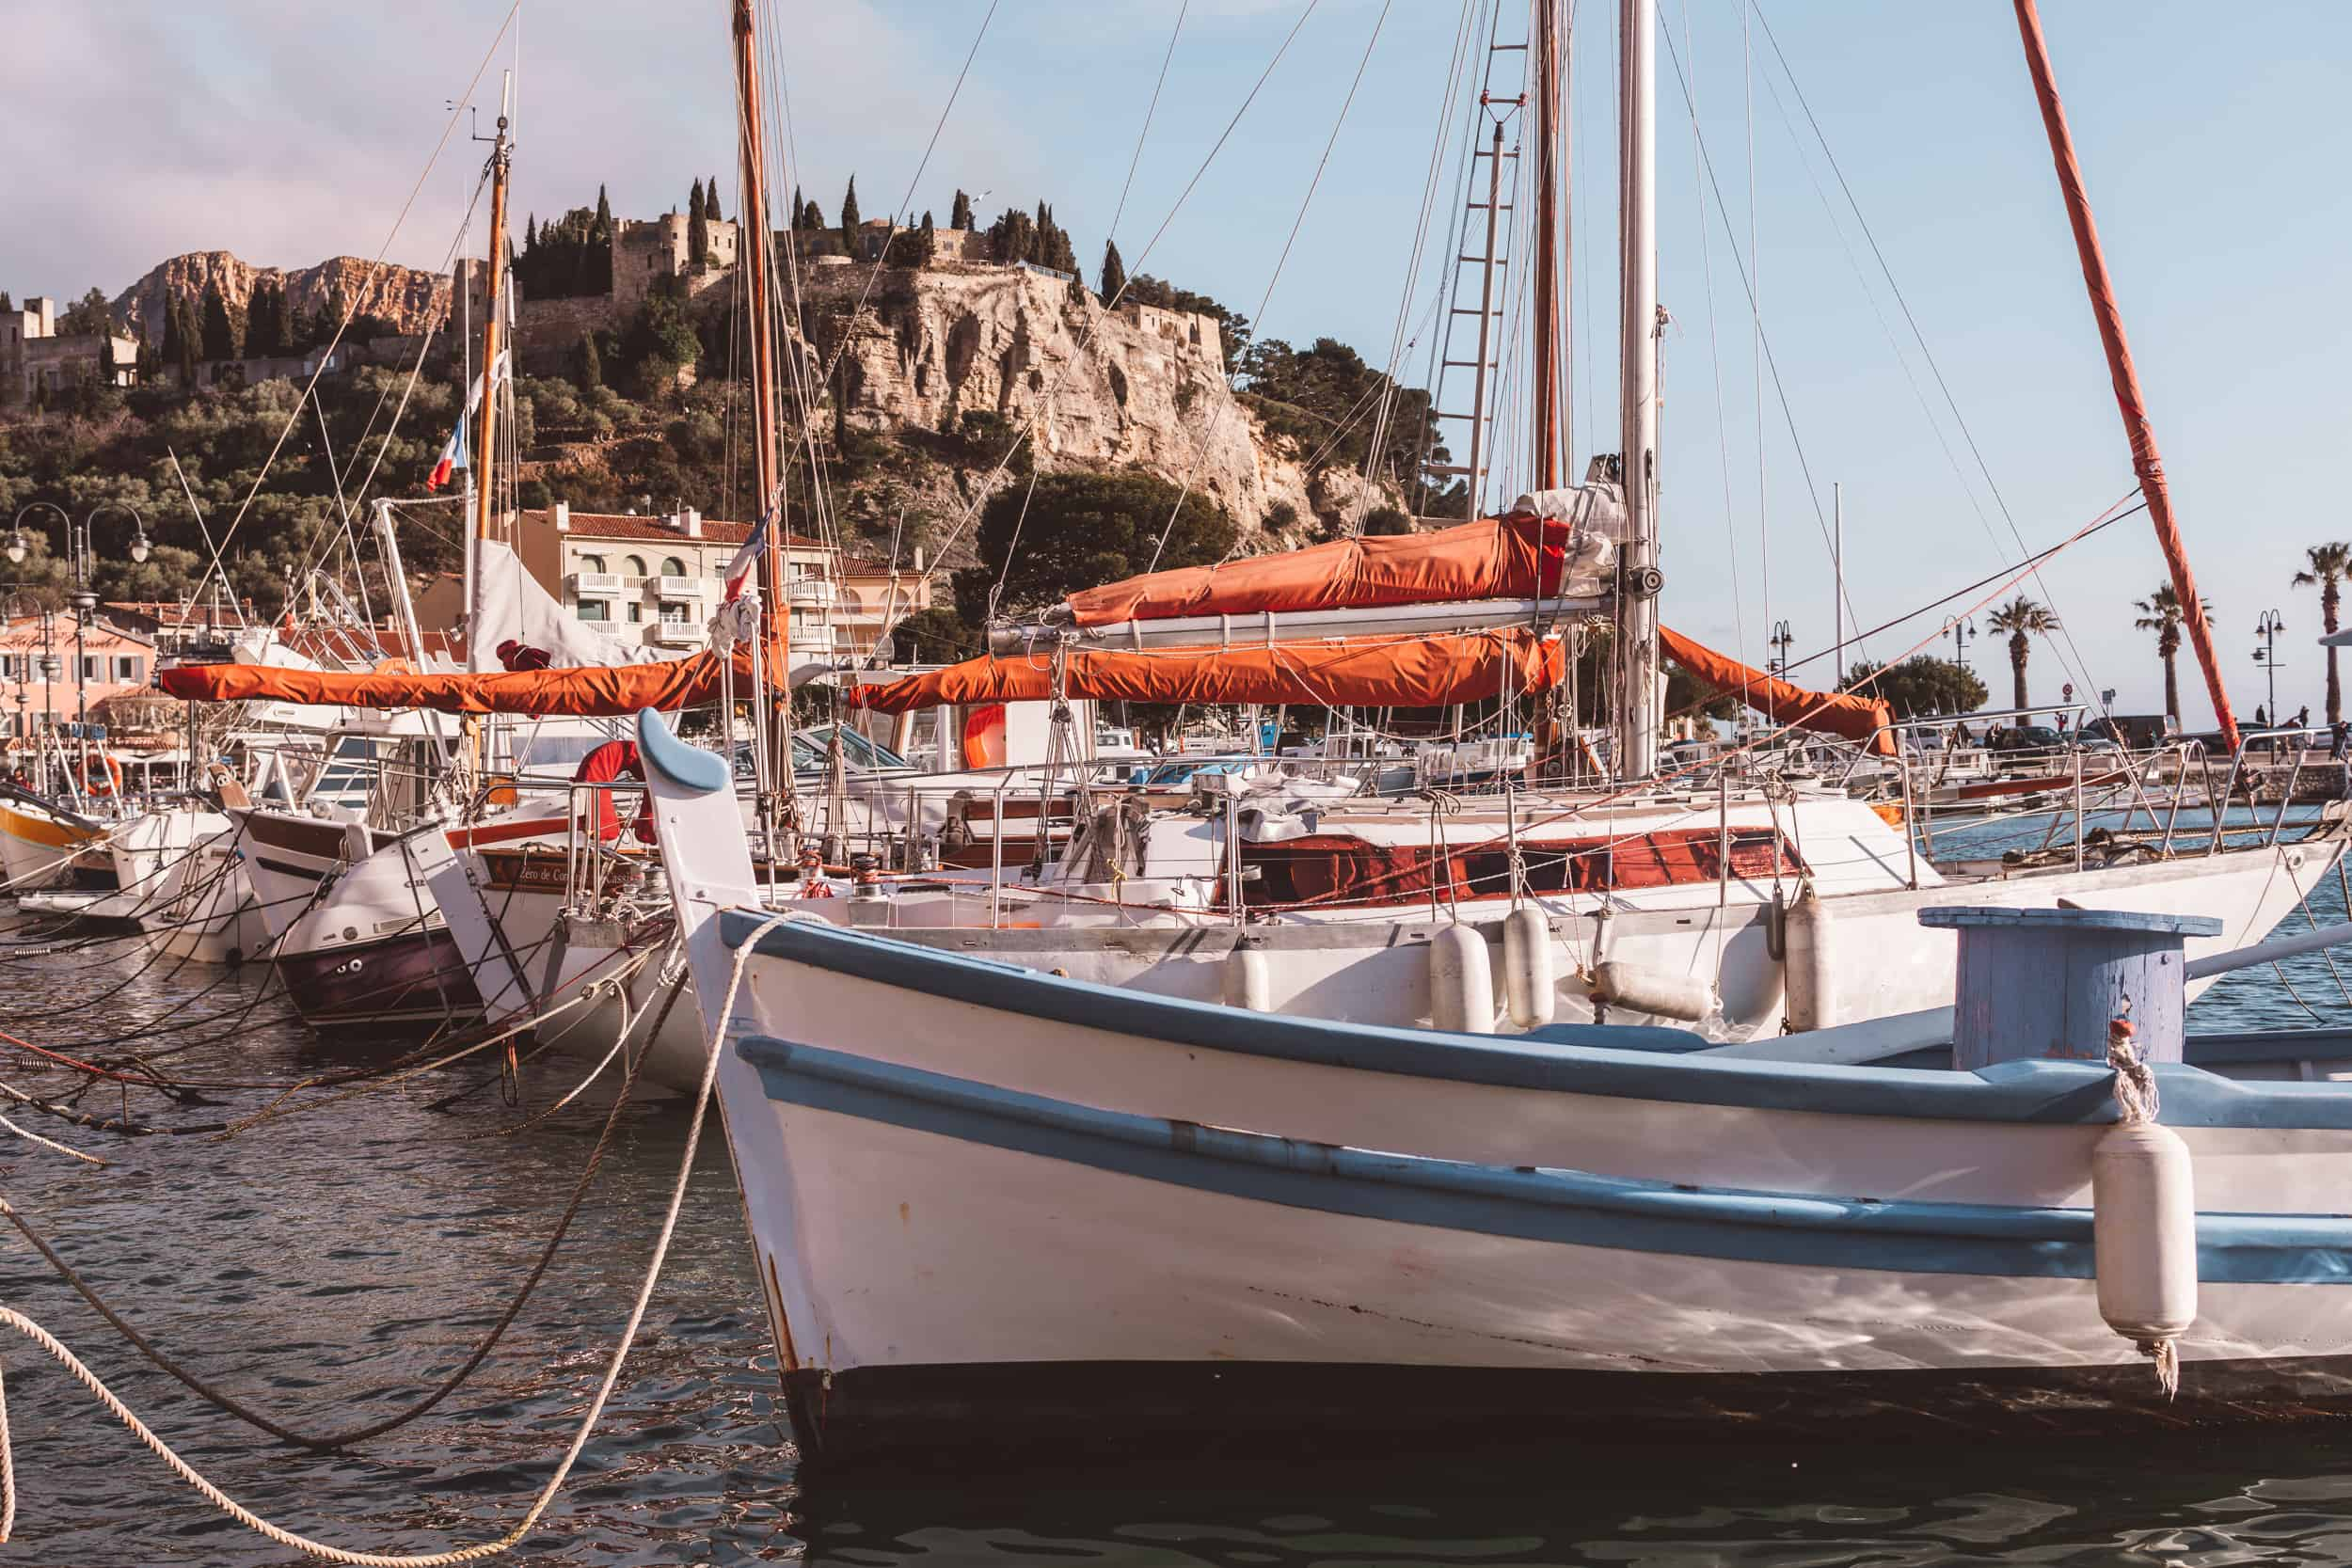 The Best Things to do in Cassis France - Your Ultimate Cassis Guide